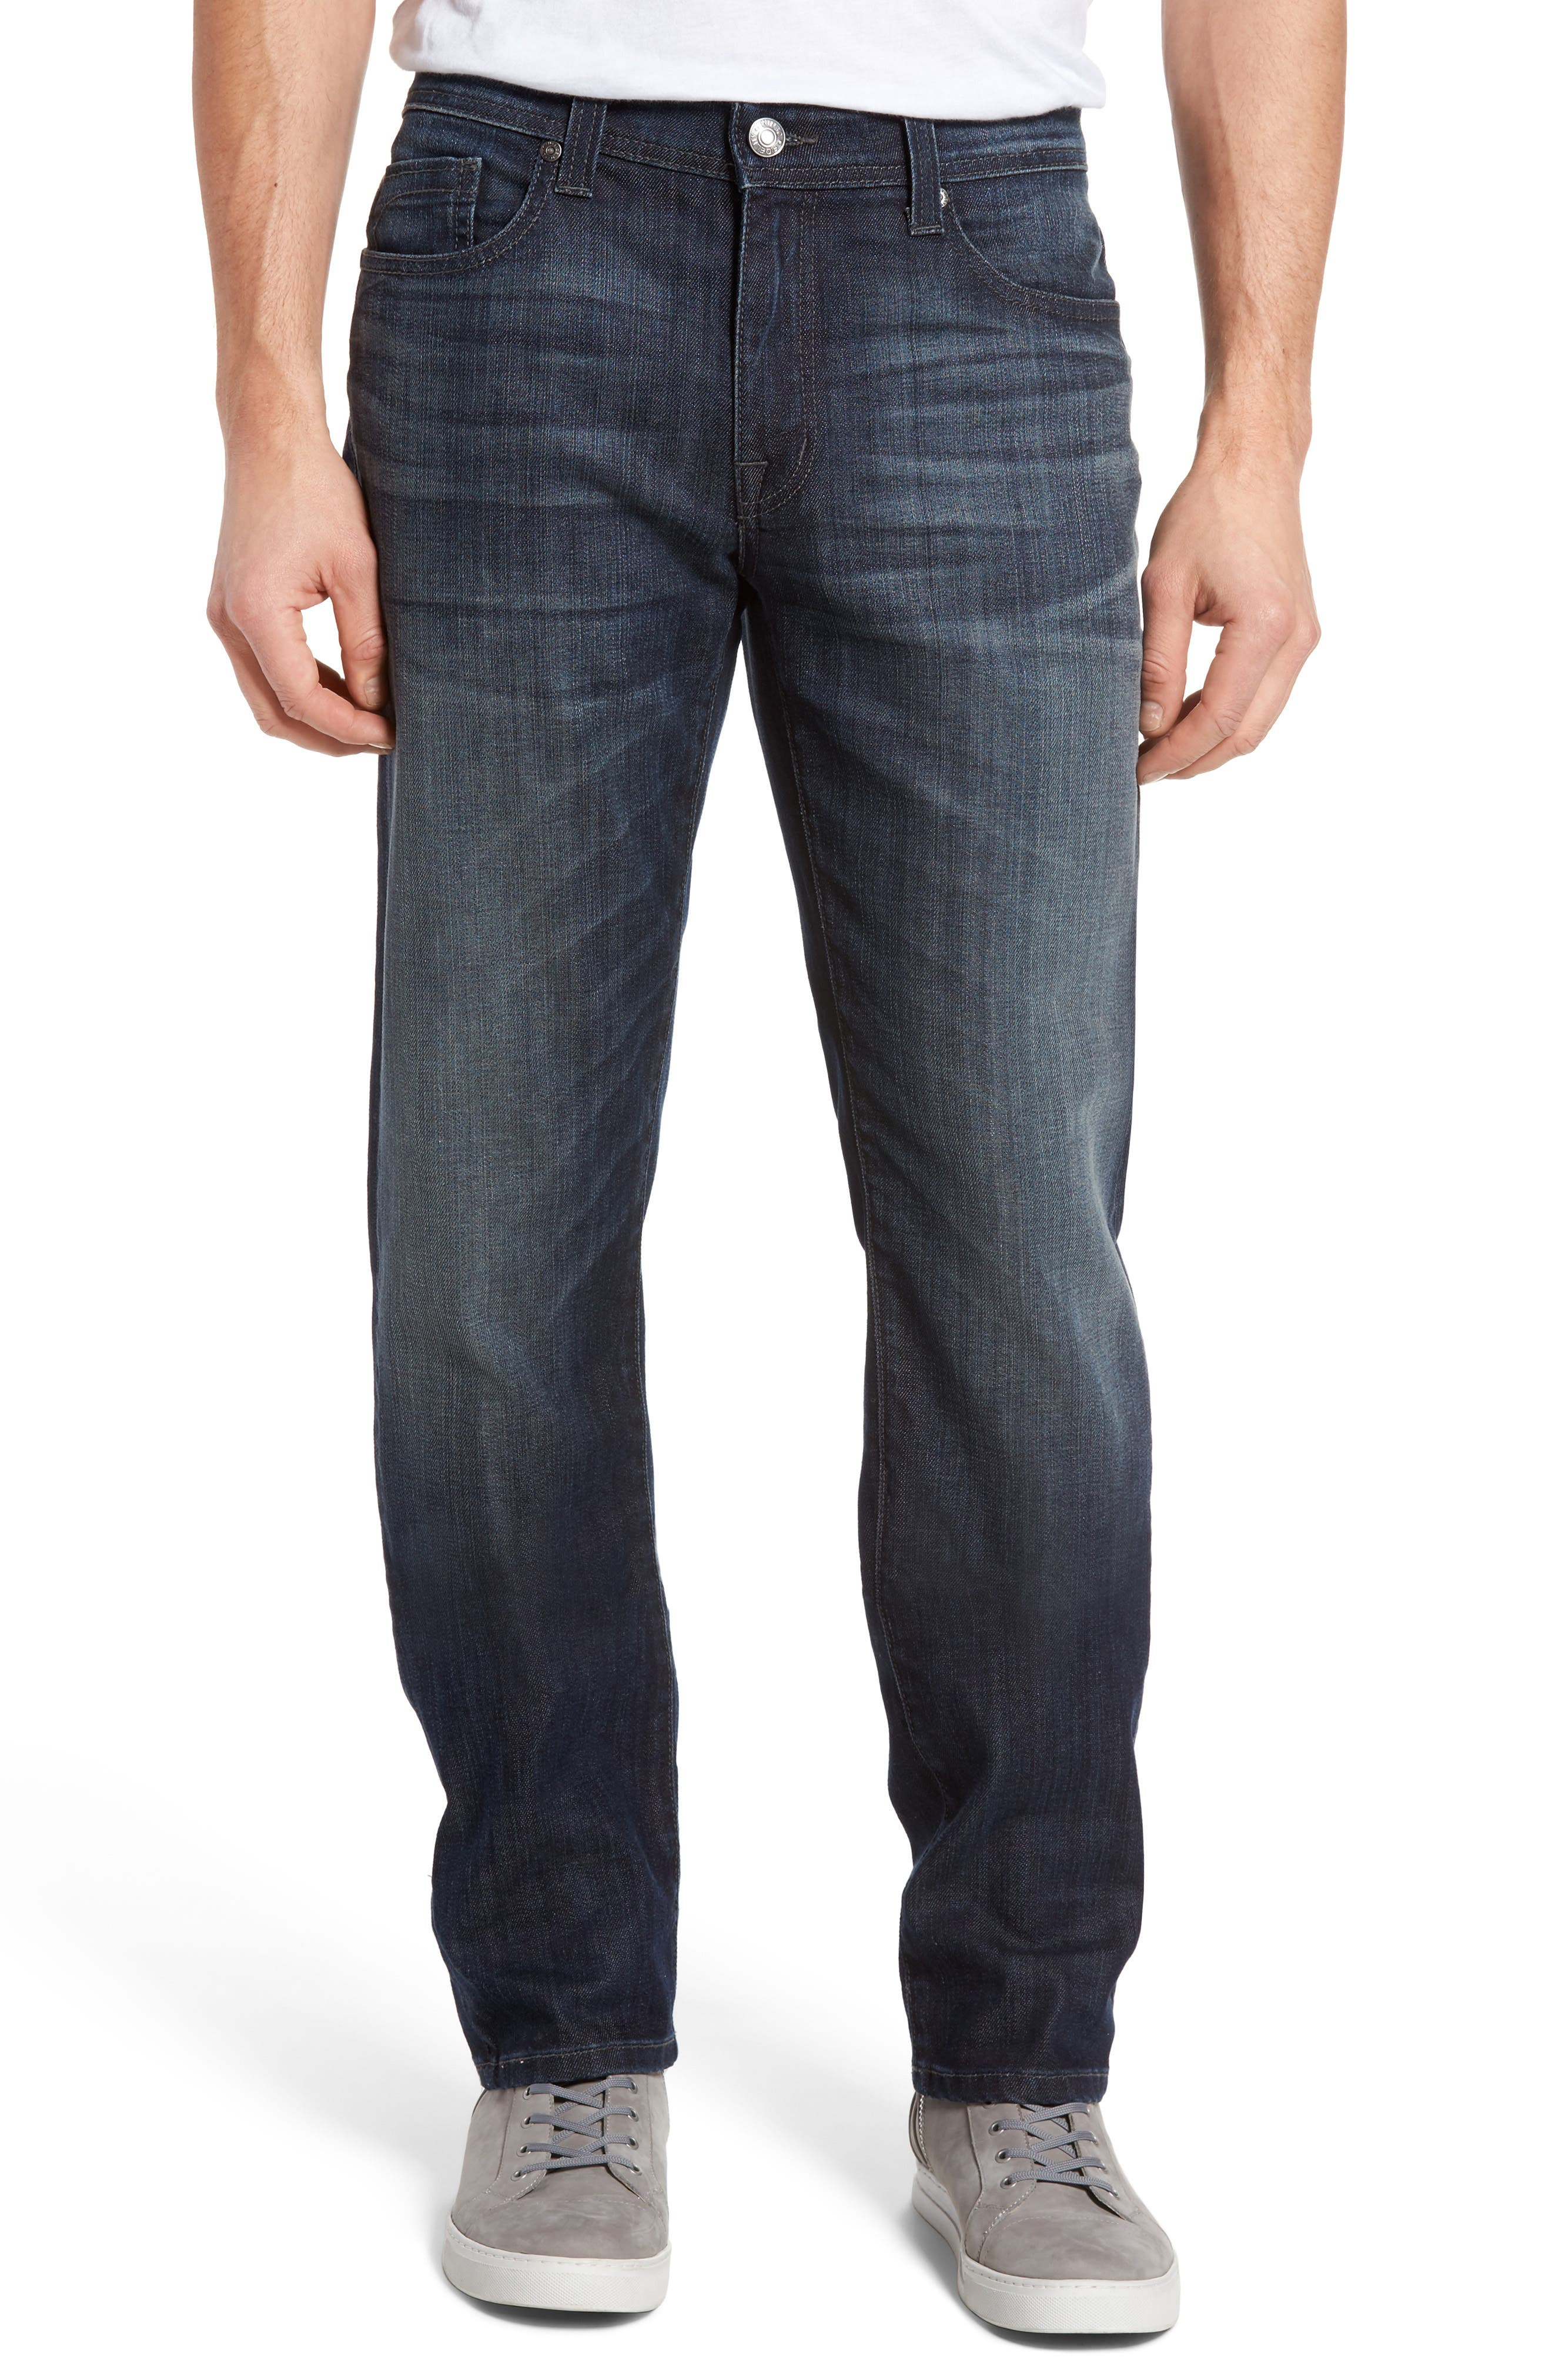 Fidelity Denim Jimmy Slim Straight Leg Jeans (Scorpion)